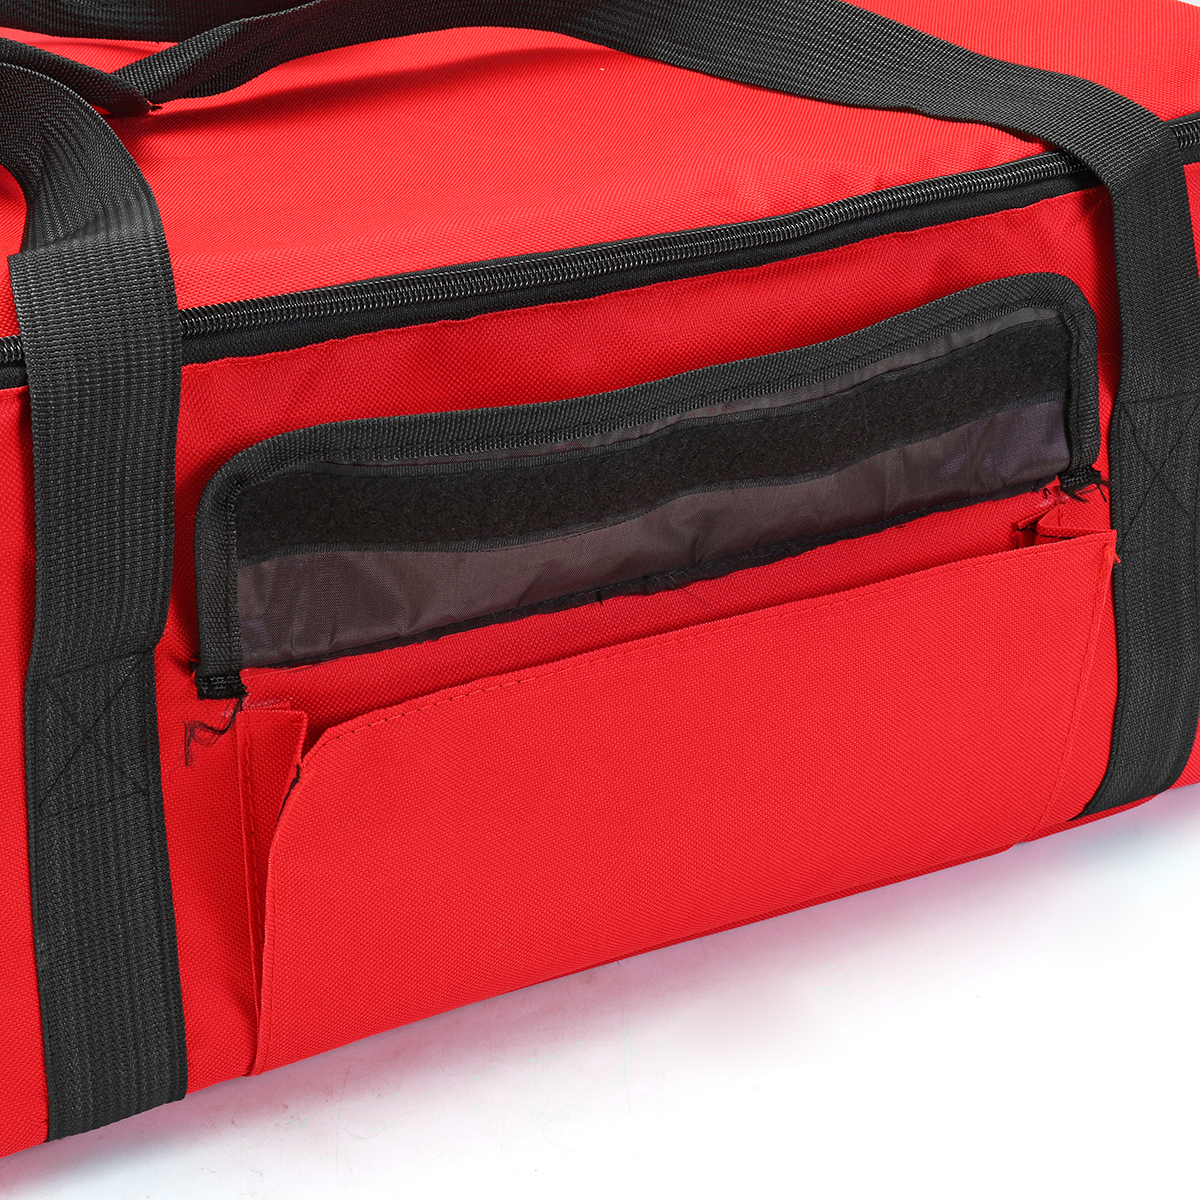 53*48*23cm Insulated Foil Food 16'' Pizza Delivery Bag Heat & Cold Oxford Storage Lunch Bag